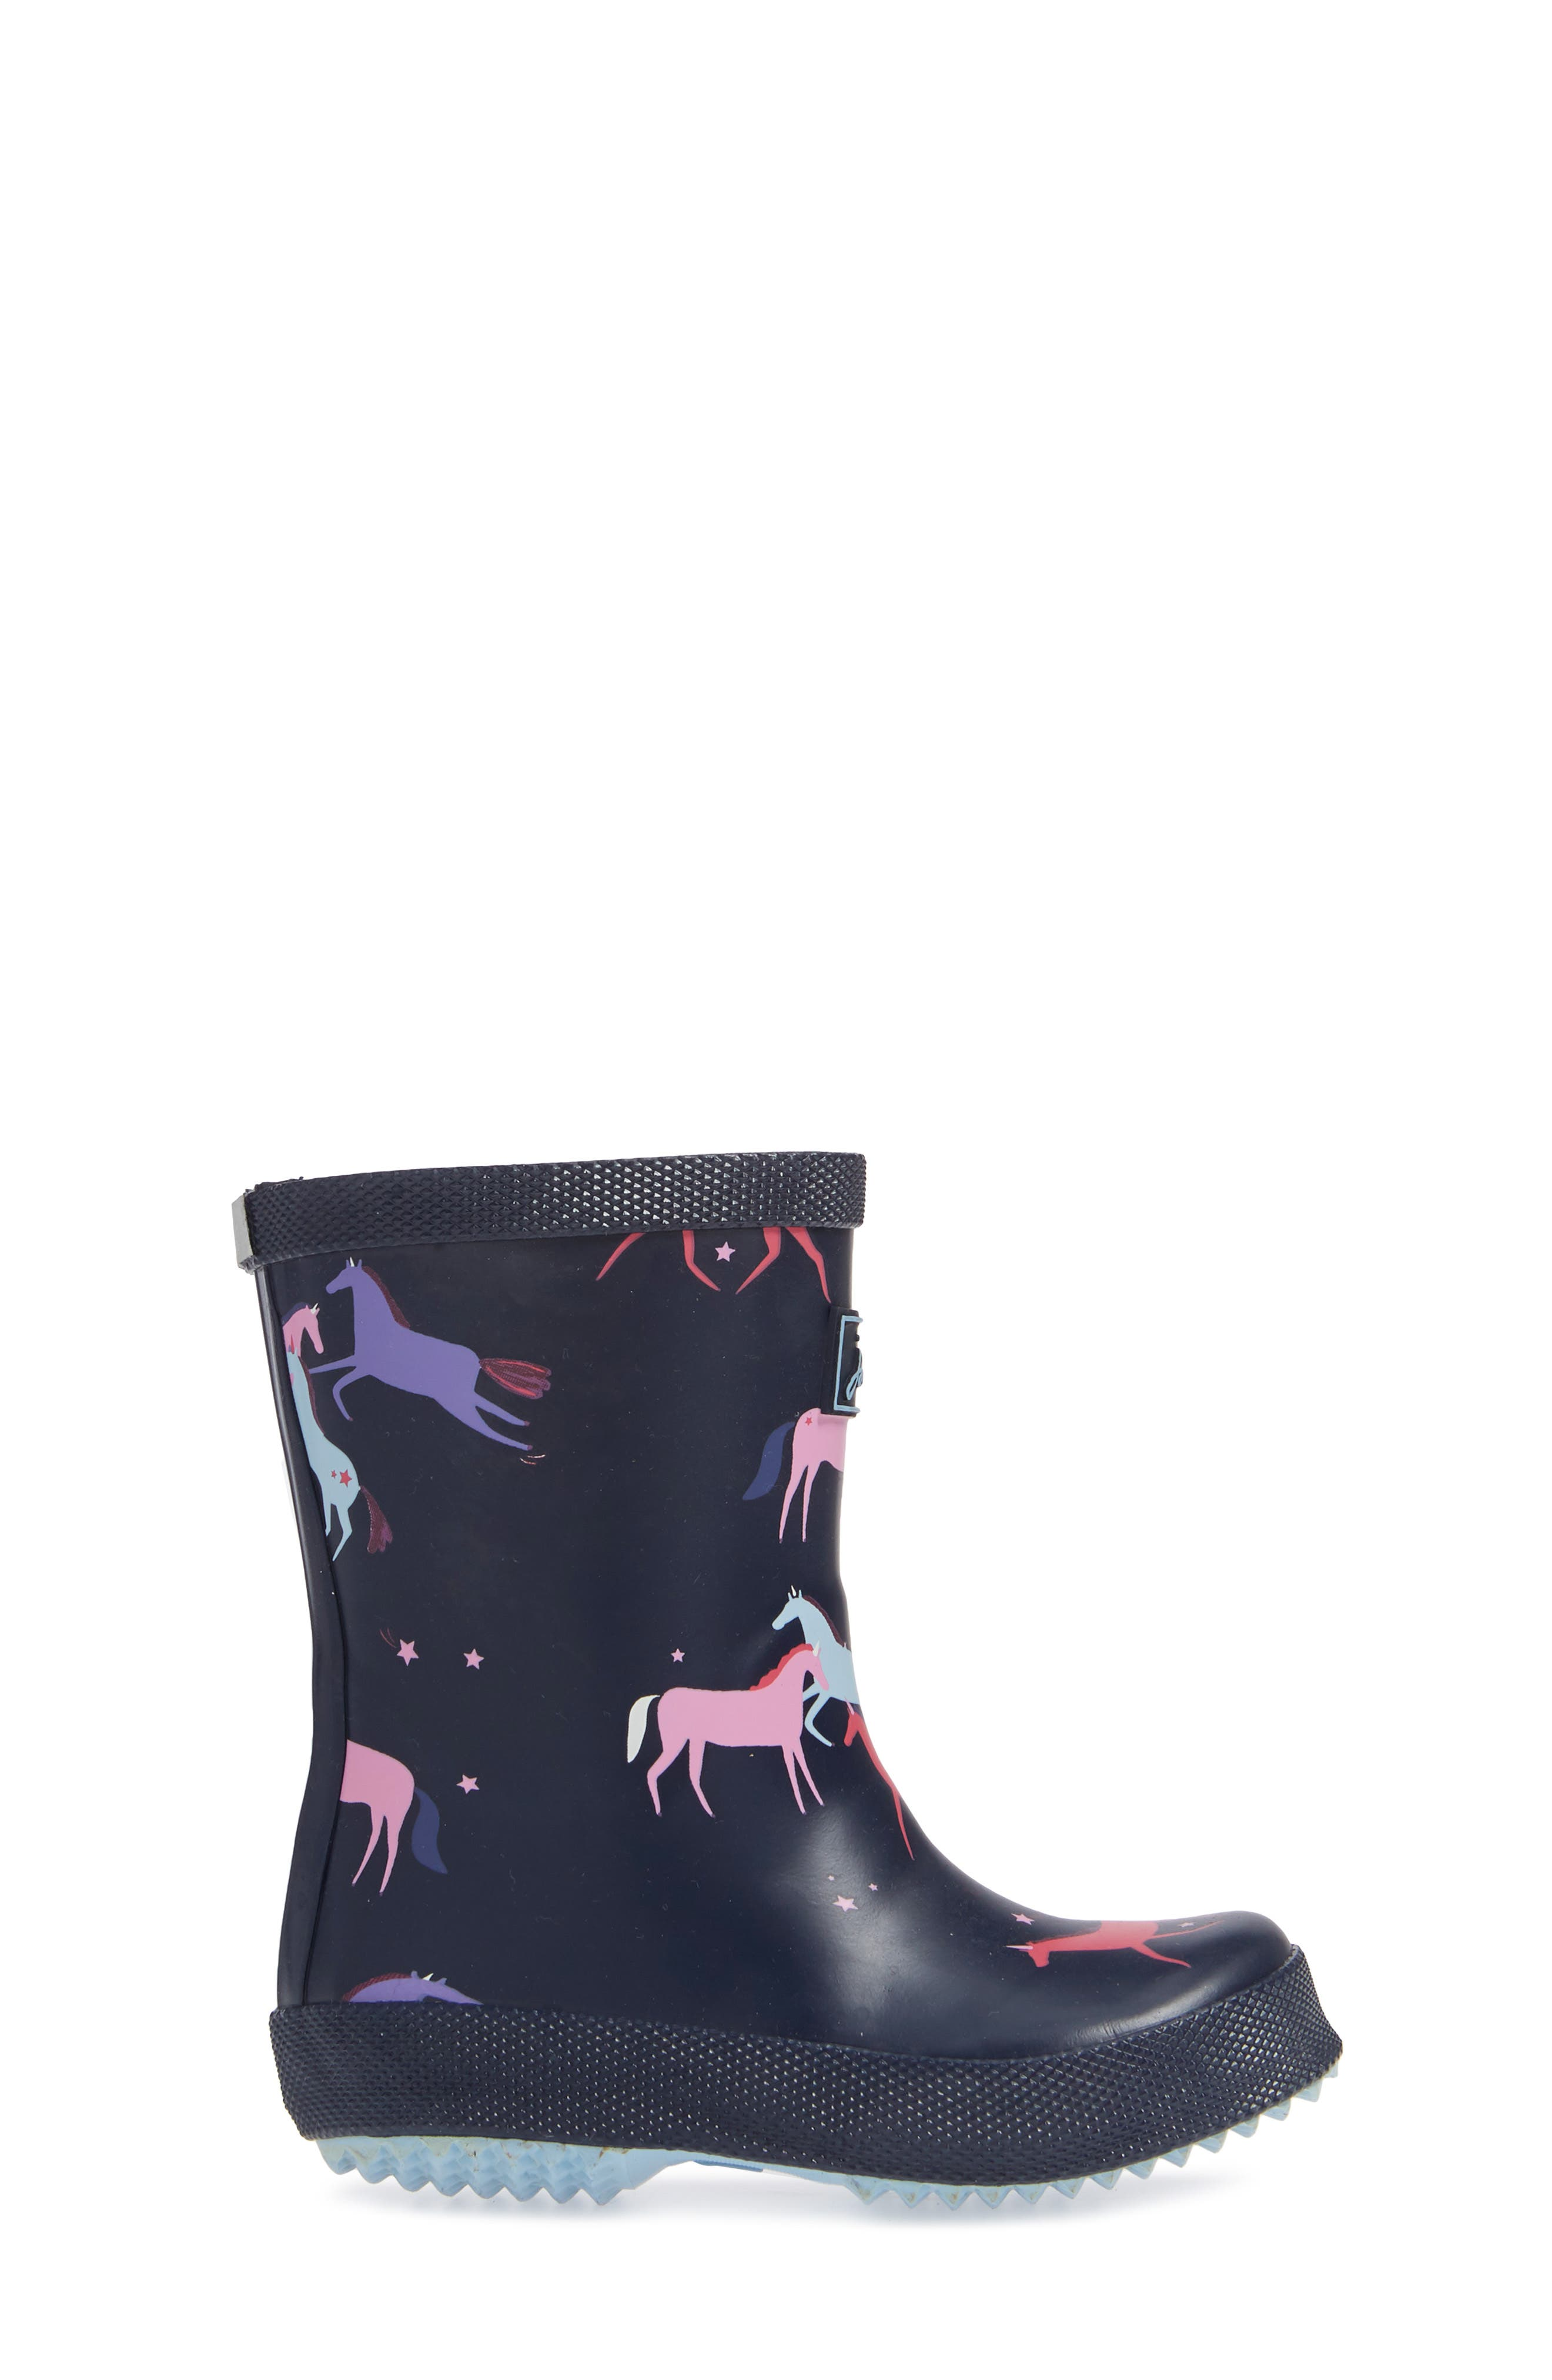 JOULES,                             Baby Welly Print Waterproof Boot,                             Alternate thumbnail 3, color,                             NAVY MAGICAL UNICORN